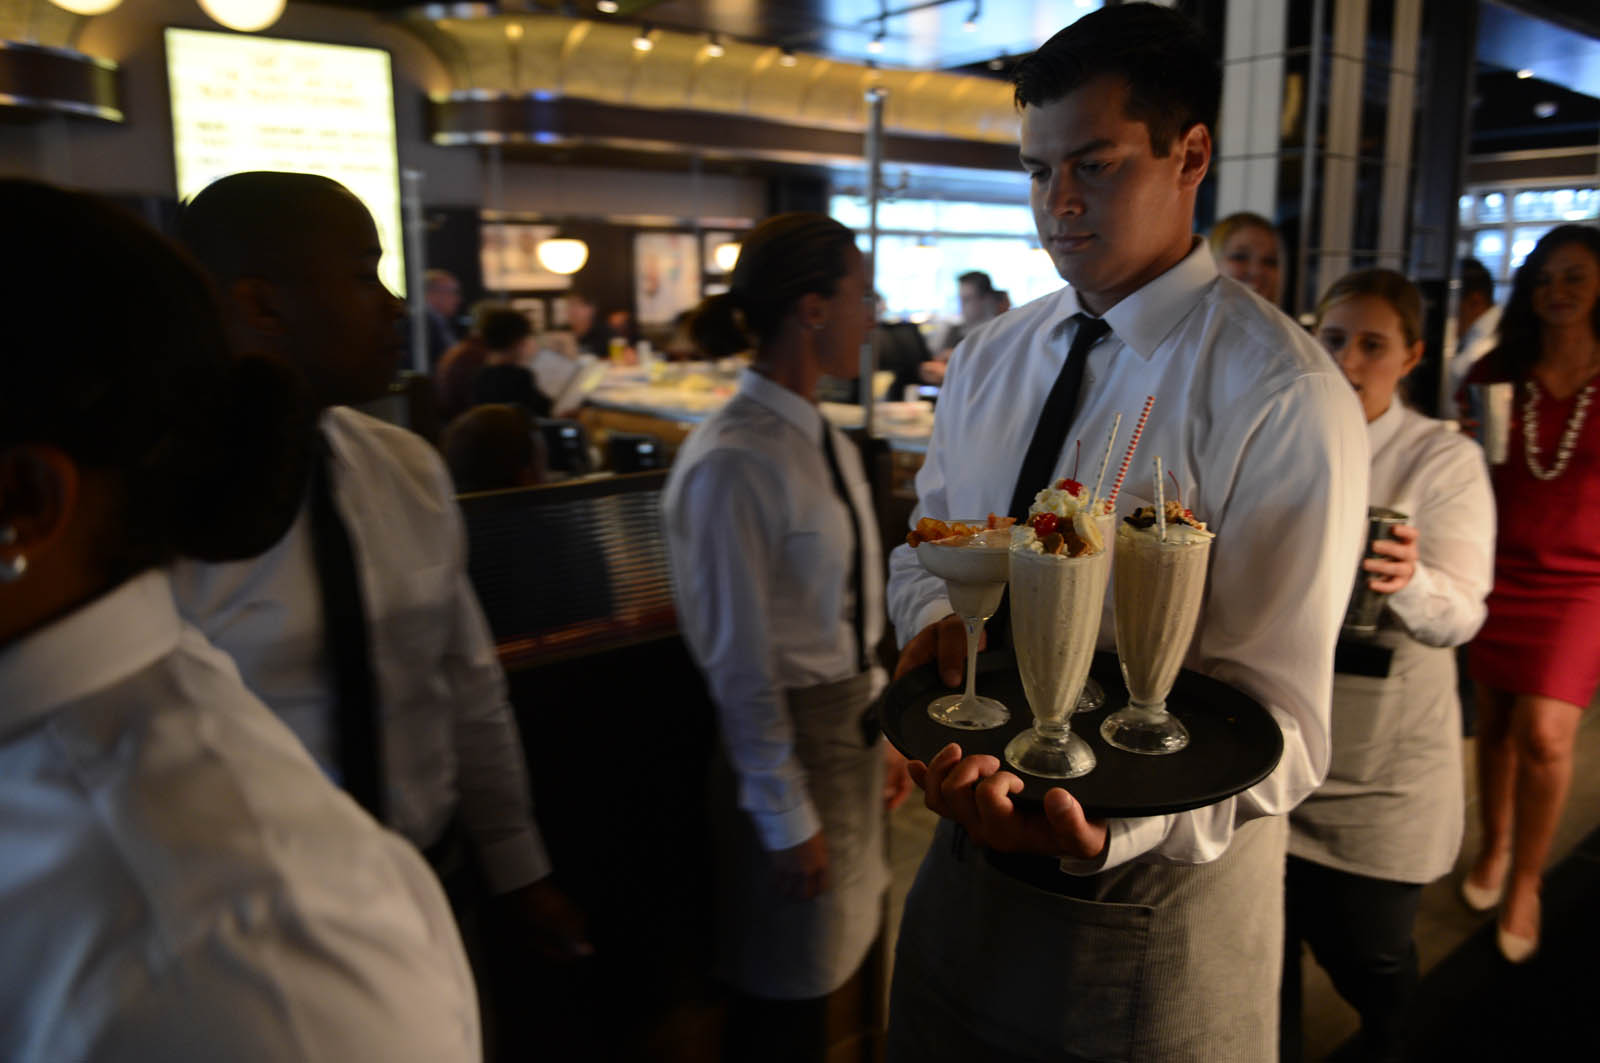 A server carrying a tray of milkshakes